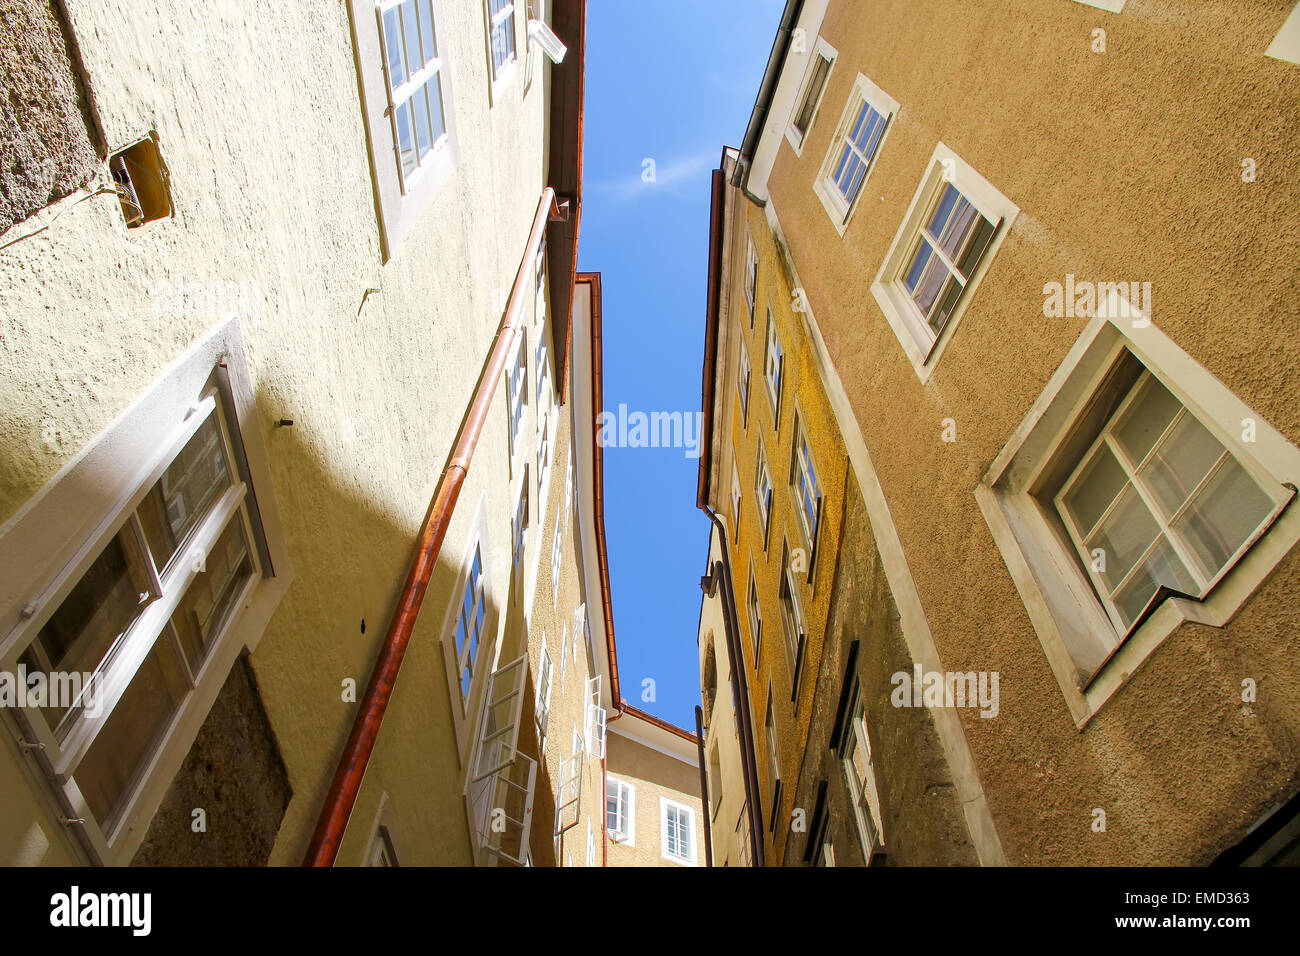 In between historic architecture in Salzburg, Austria, Europe. - Stock Image